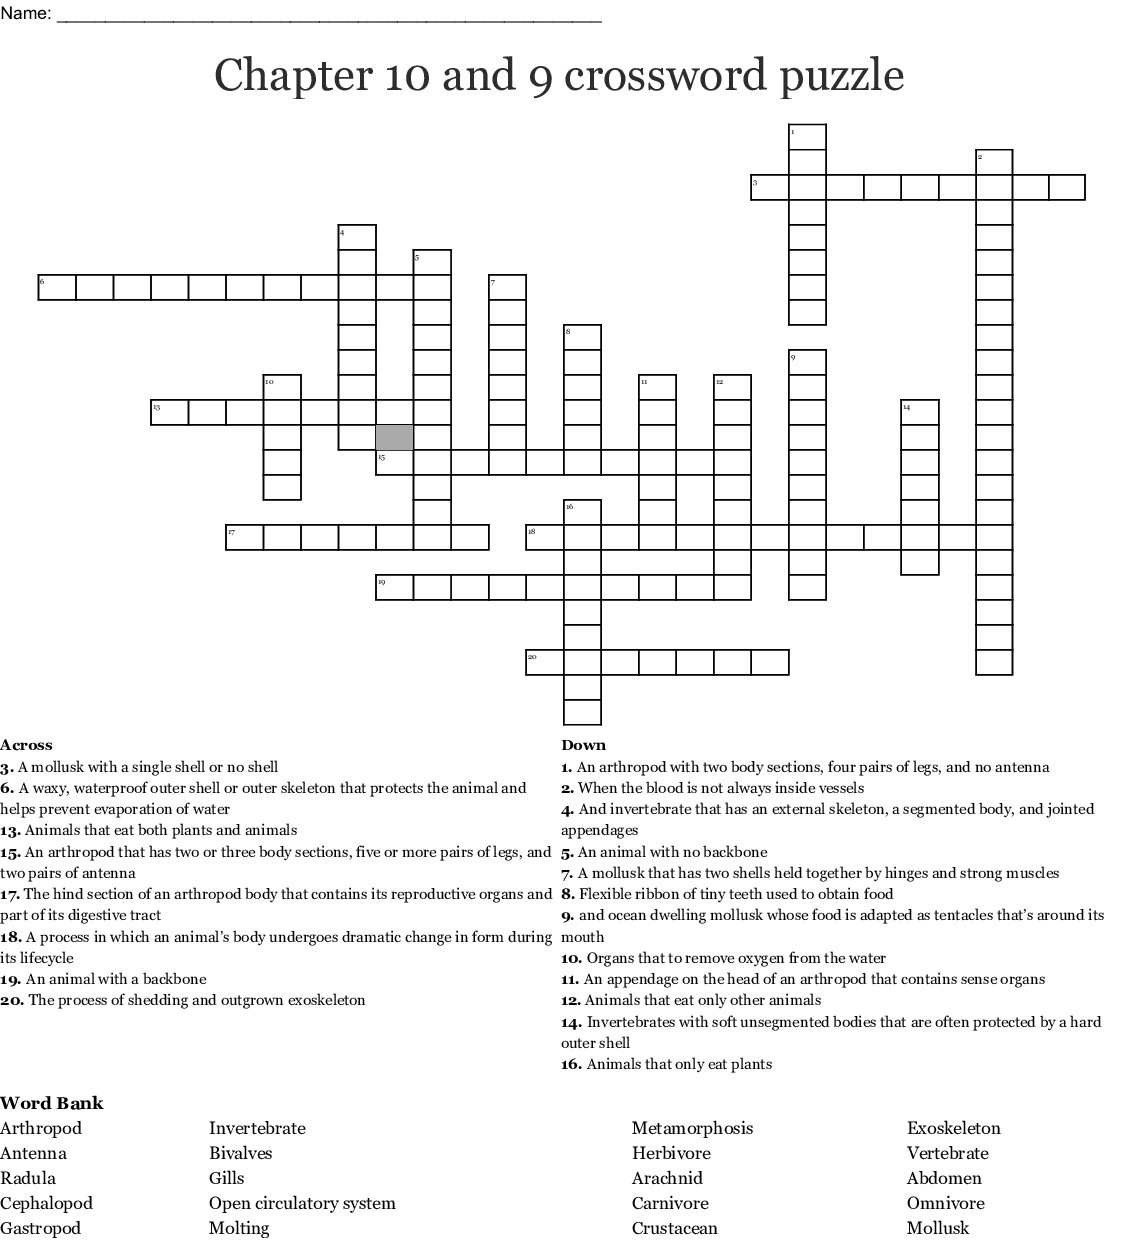 Chapter 10 and 9 crossword puzzle - WordMint